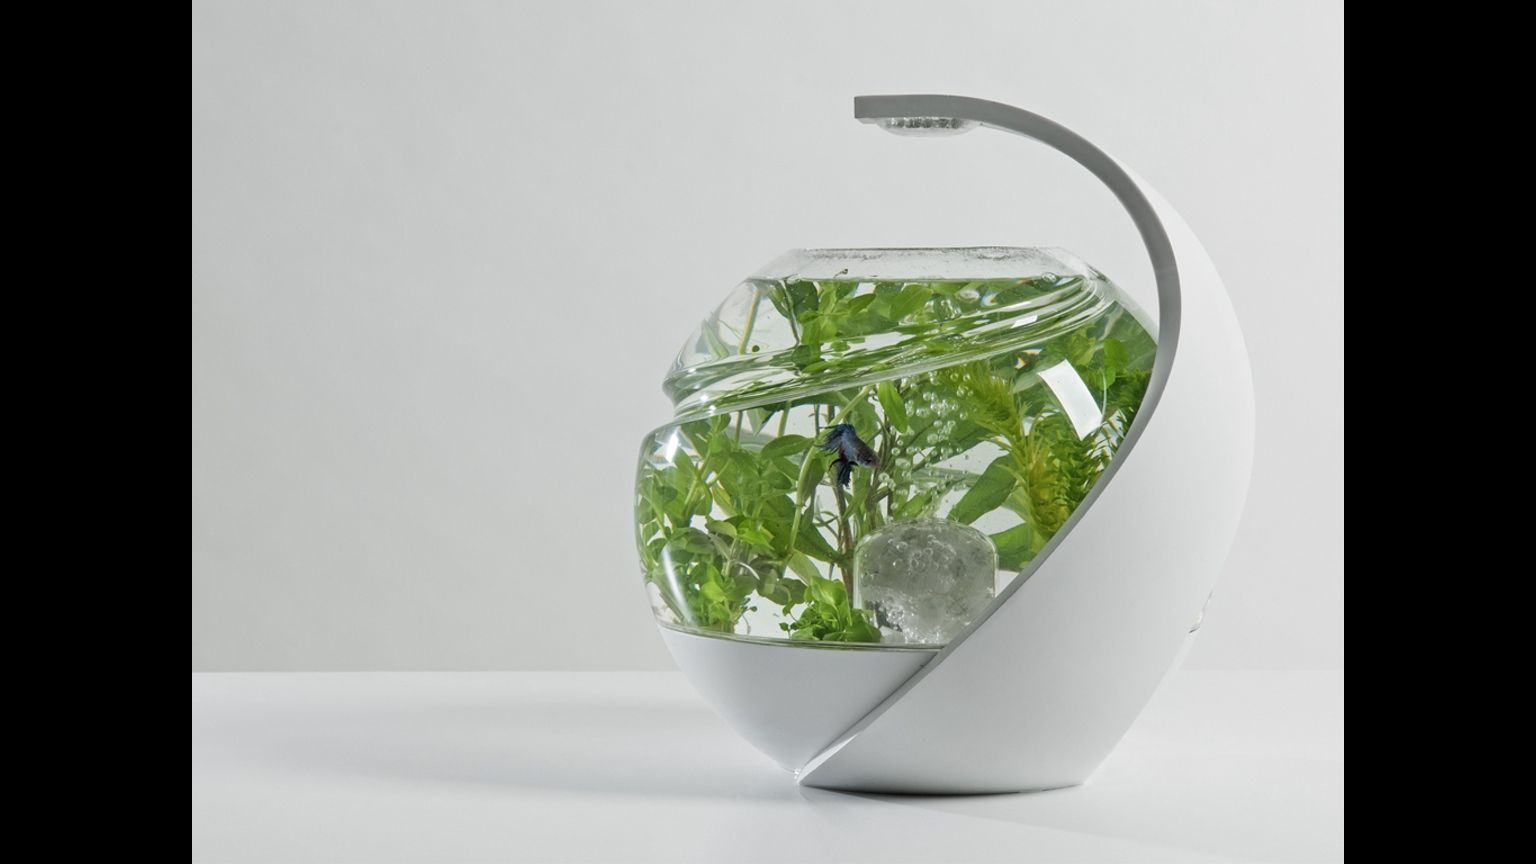 Avo is a unique selfcleaning fish tank. It requires no